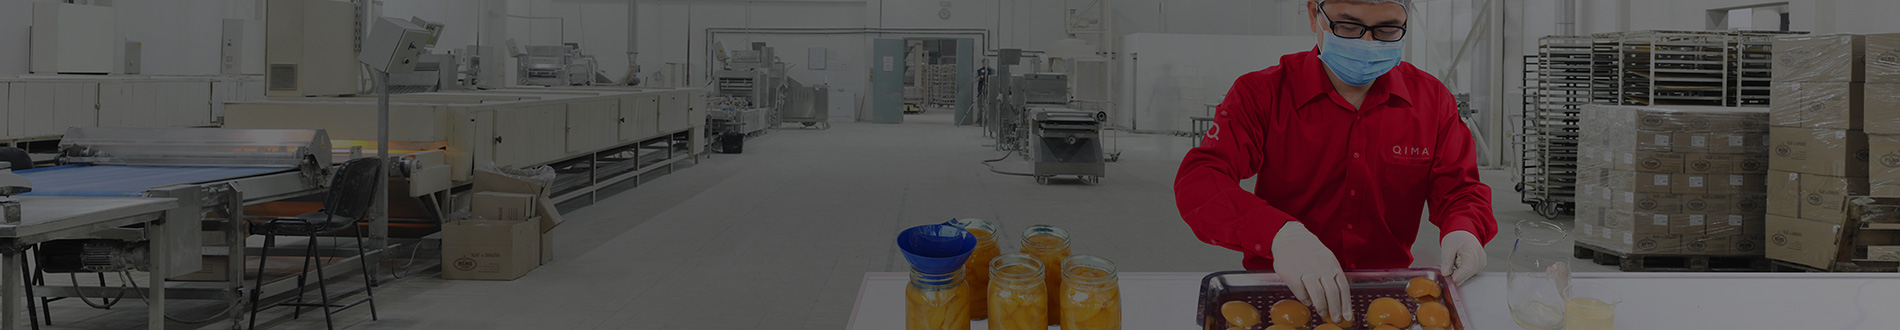 Food Inspection Services – Quality & Safety | QIMA